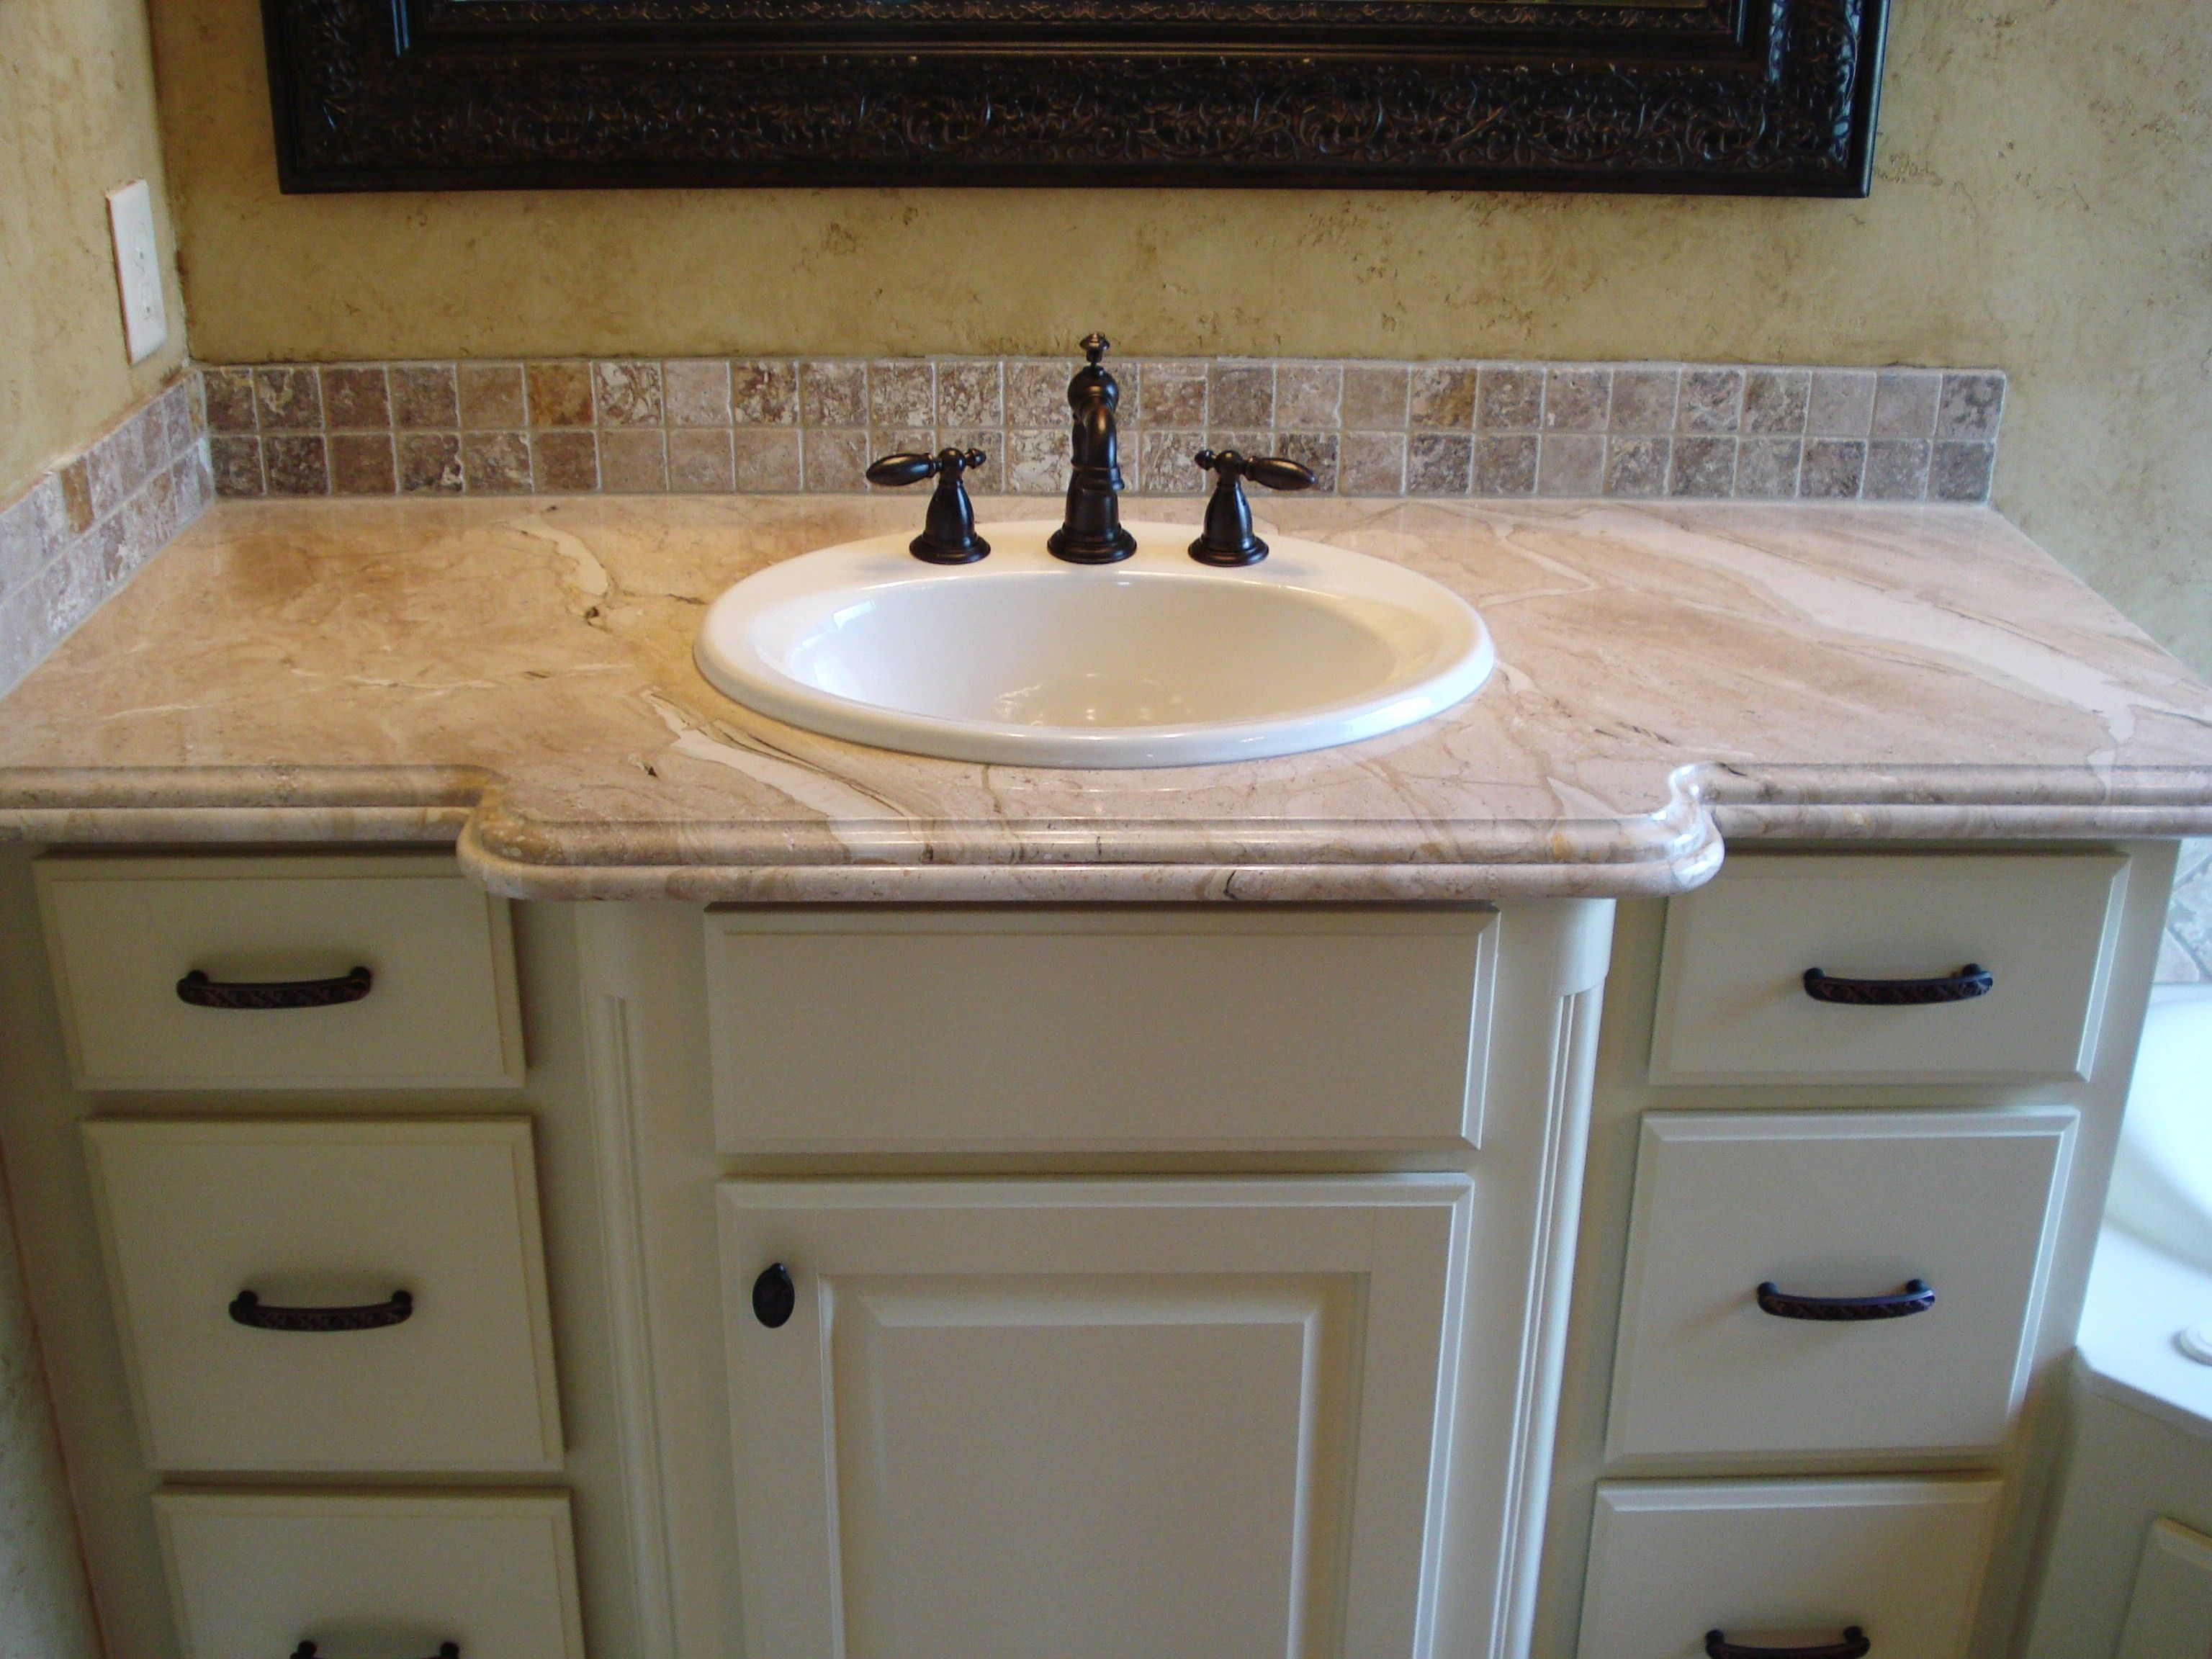 Marble bathroom counter tops - Bathroom Kitchen Interior Cultured Marble Bathroom Vanity Tops Combined White Under Mount Sink Cultured Marble Countertops